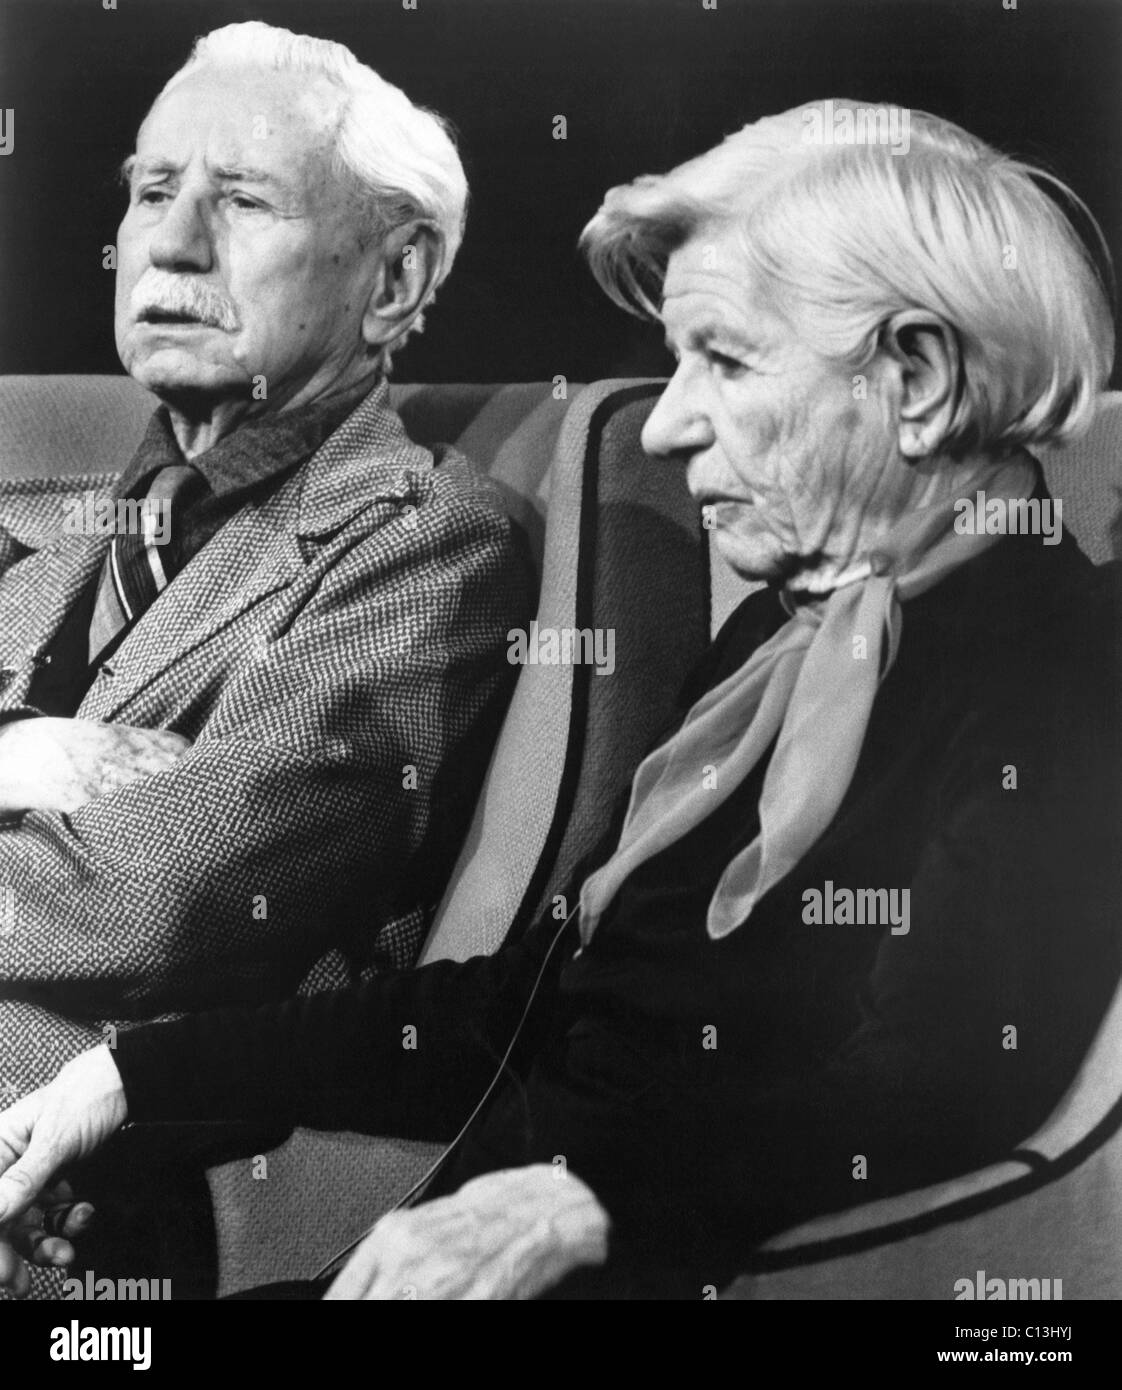 From left: historians Will and Ariel Durant, 1970s - Stock Image